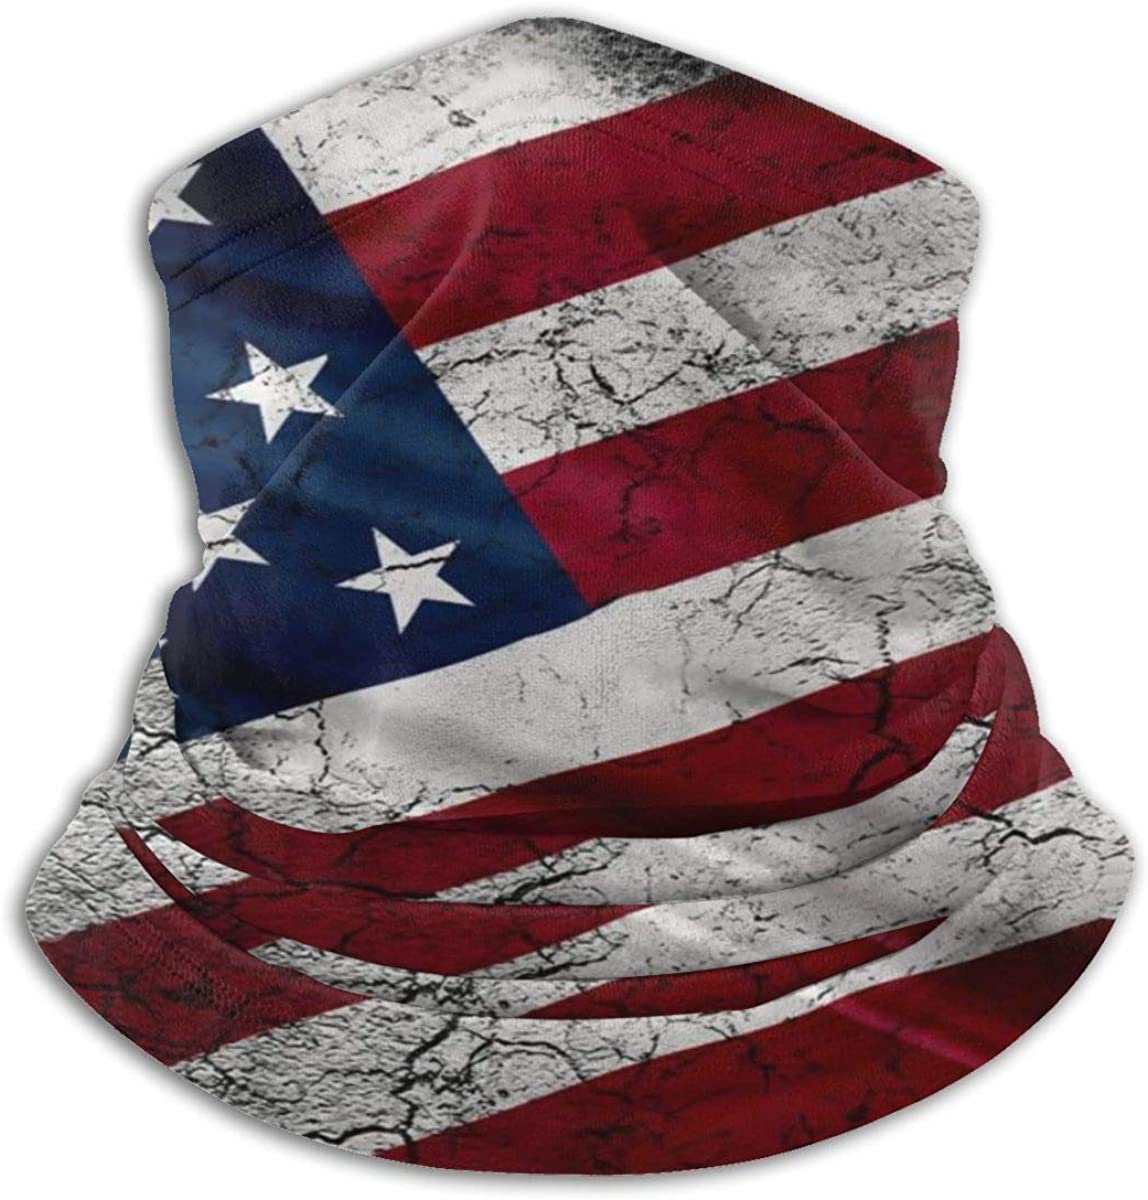 Kimisoy United States Flag of America Neck Gaiter Windproof Face Cover Versatility Neck Warmer Dust-Proof Half Face Shields Soft Headwear Comfort Balaclava for Men Women Kids Black